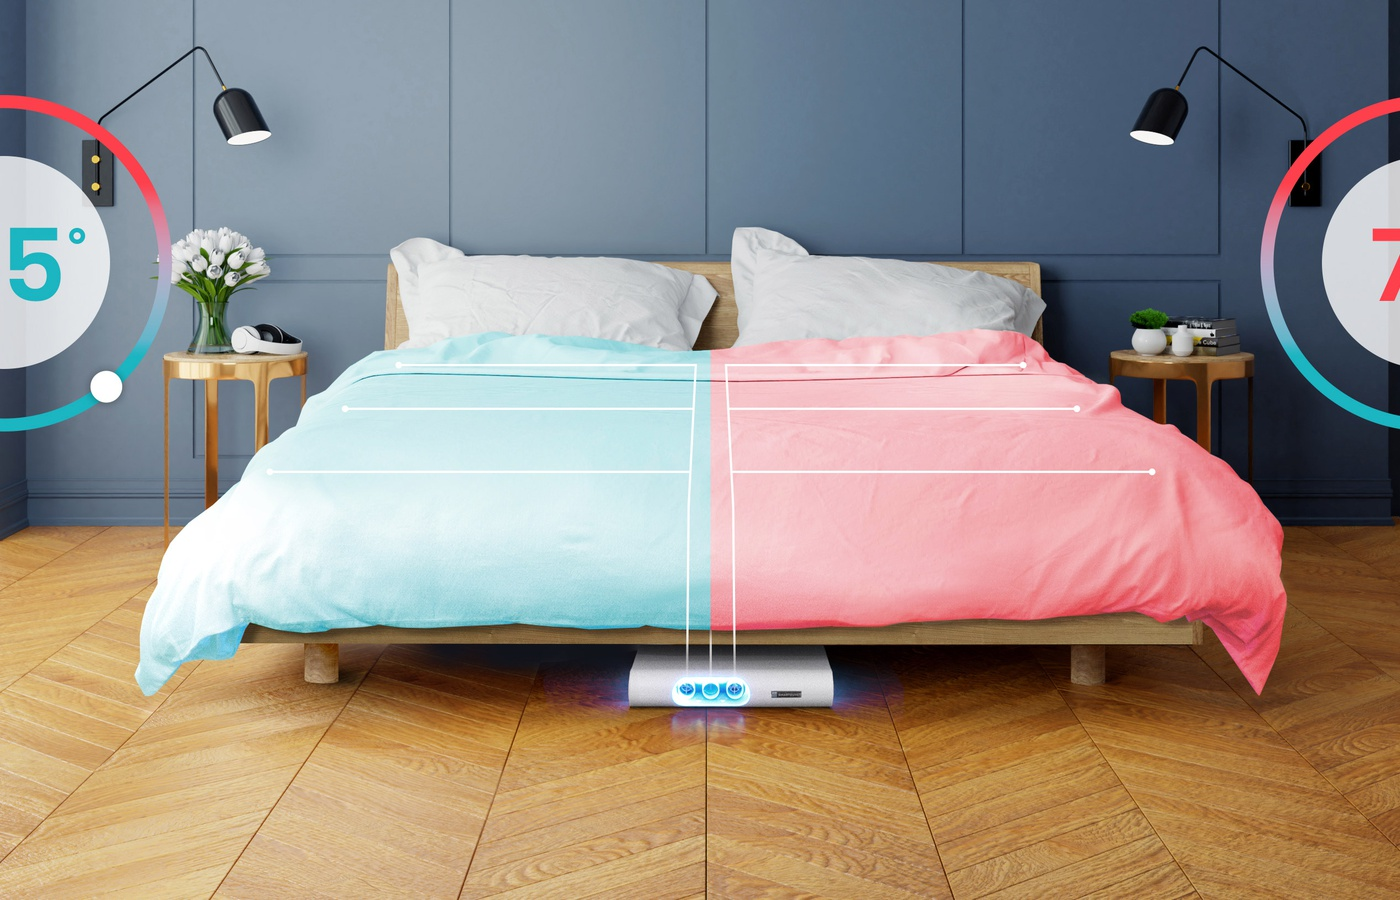 The Dual Zone Smartduvet: What Does It Do and Do I Need One?